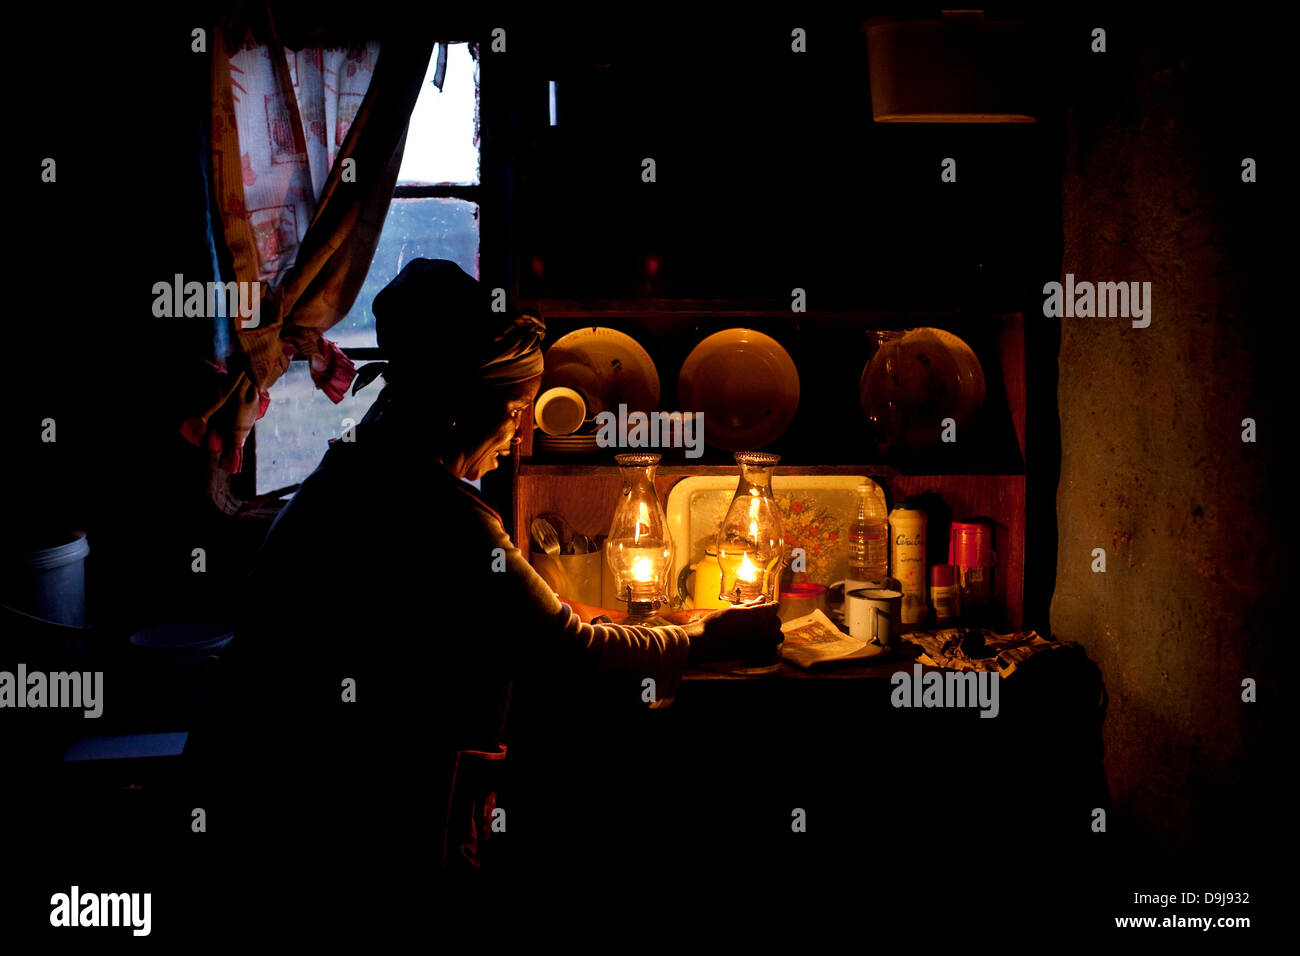 africa; african; african lady; africans; candlelight; culture; eastern cape; fashion; kitchen; lady; lighting paraffin - Stock Image